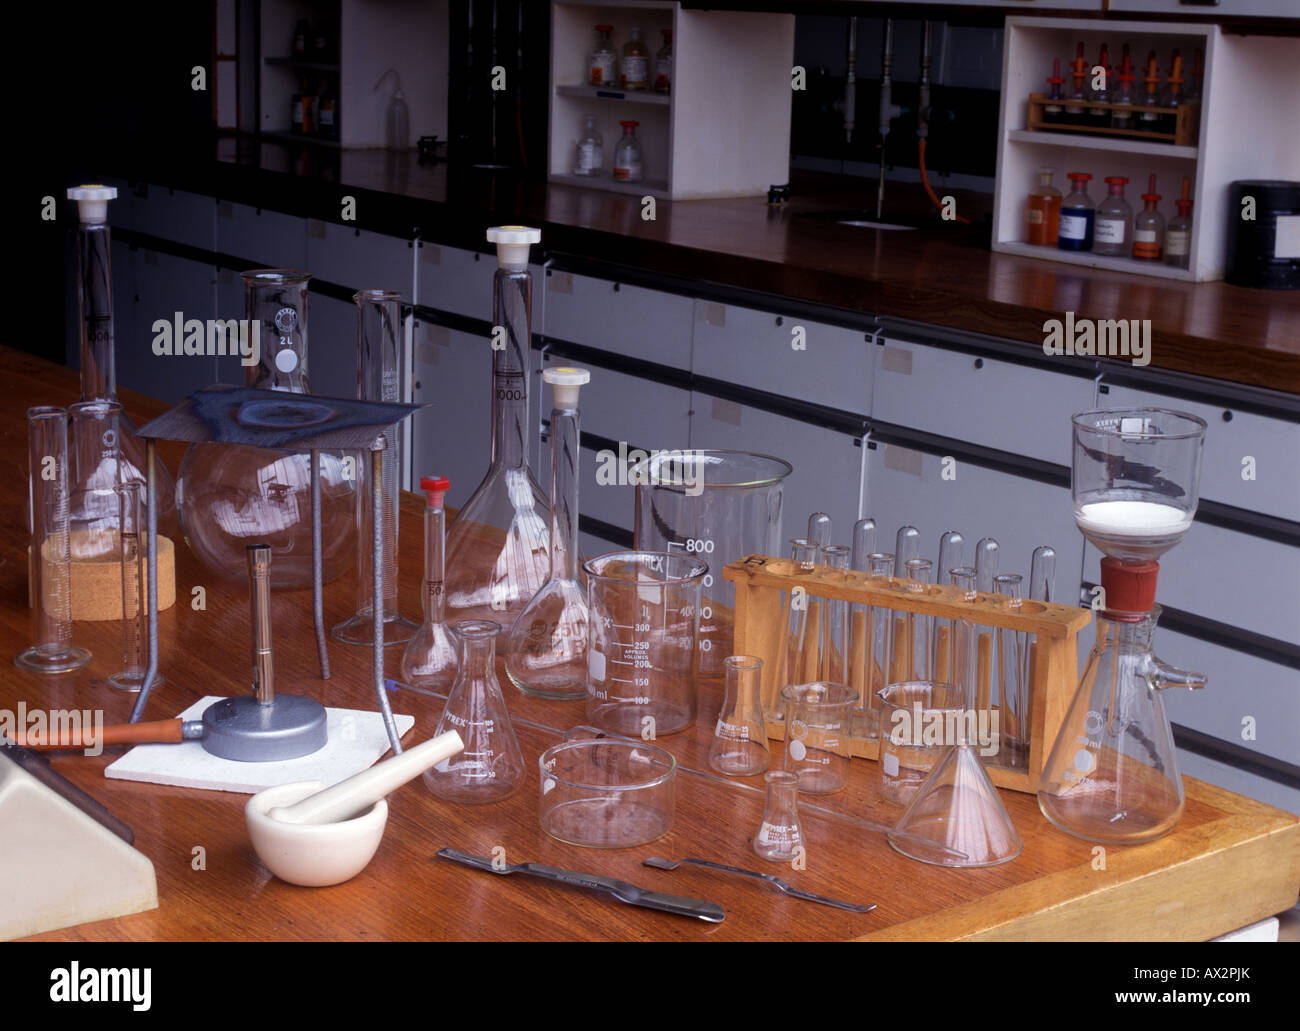 Laboratory glassware in a laboratory - Stock Image